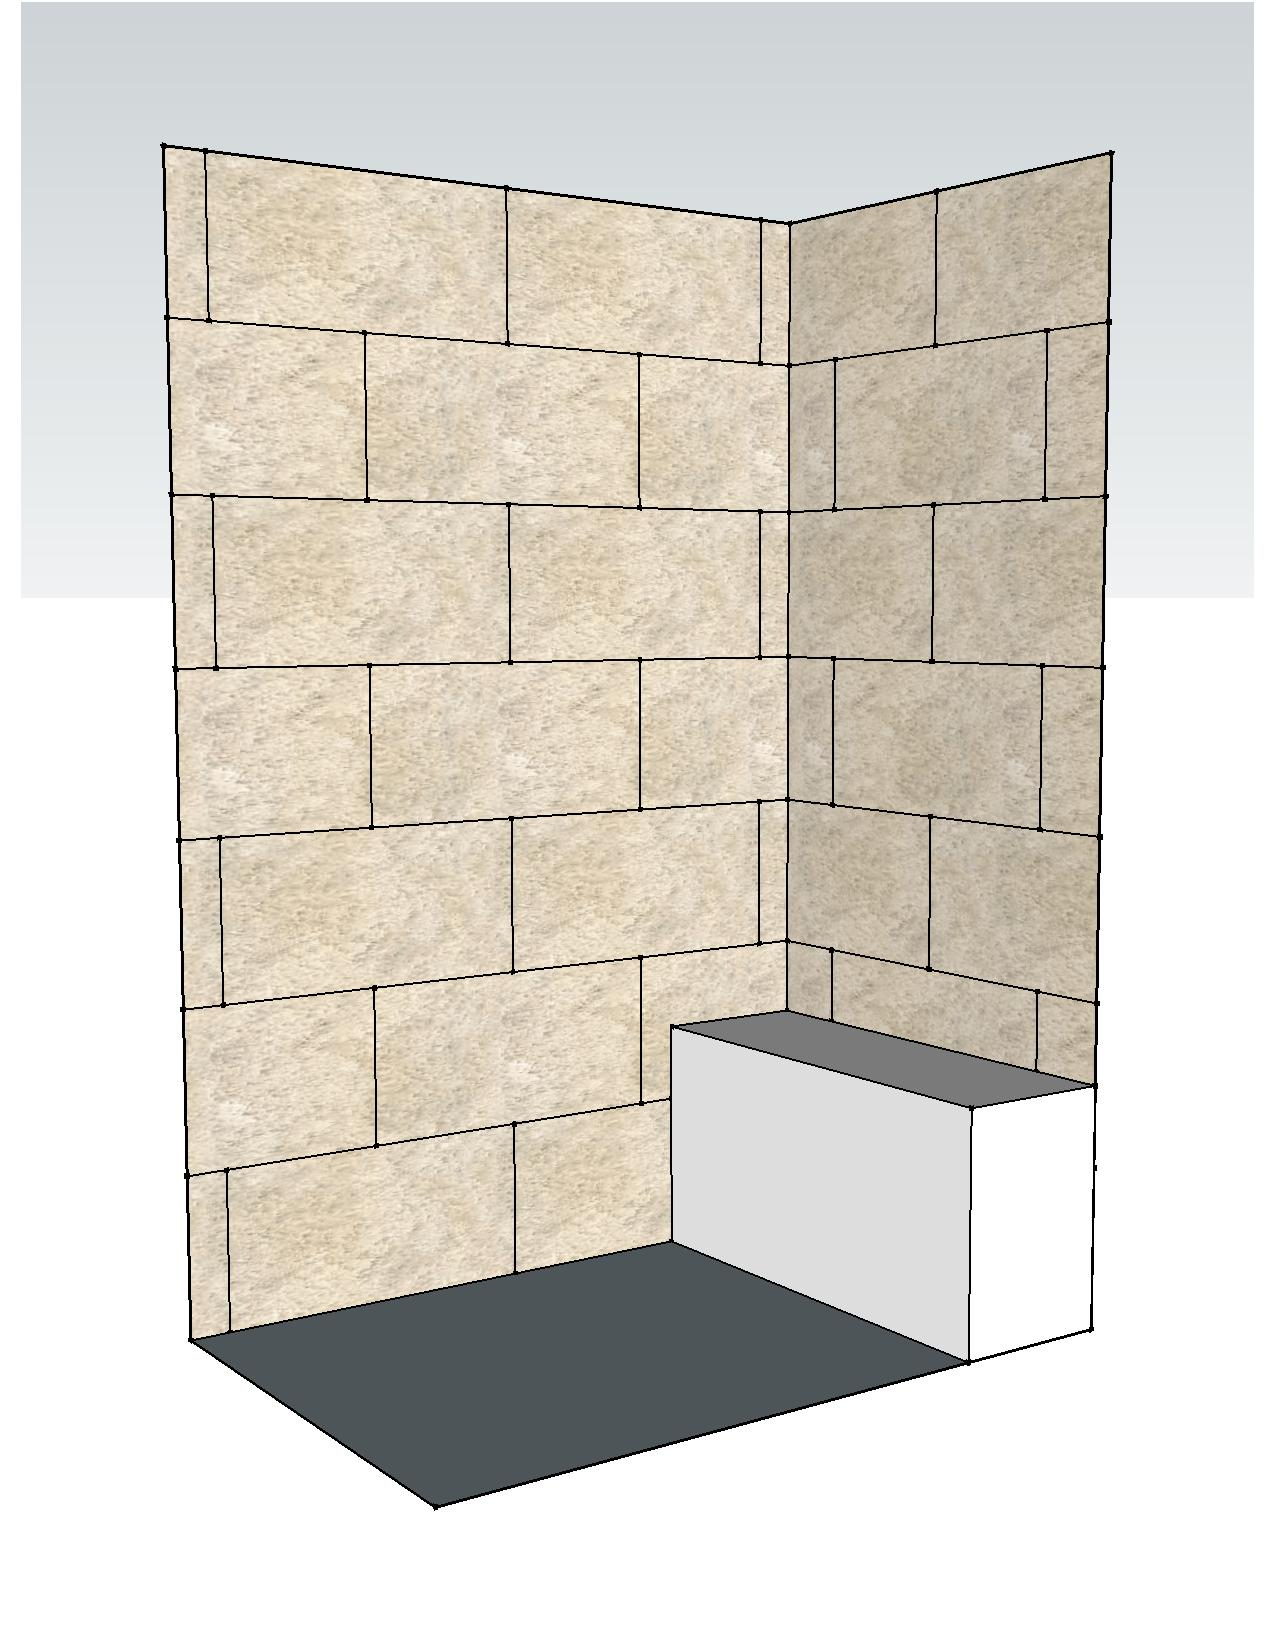 Comfortable Shower Tile Spacing Pictures Inspiration - Bathroom ...